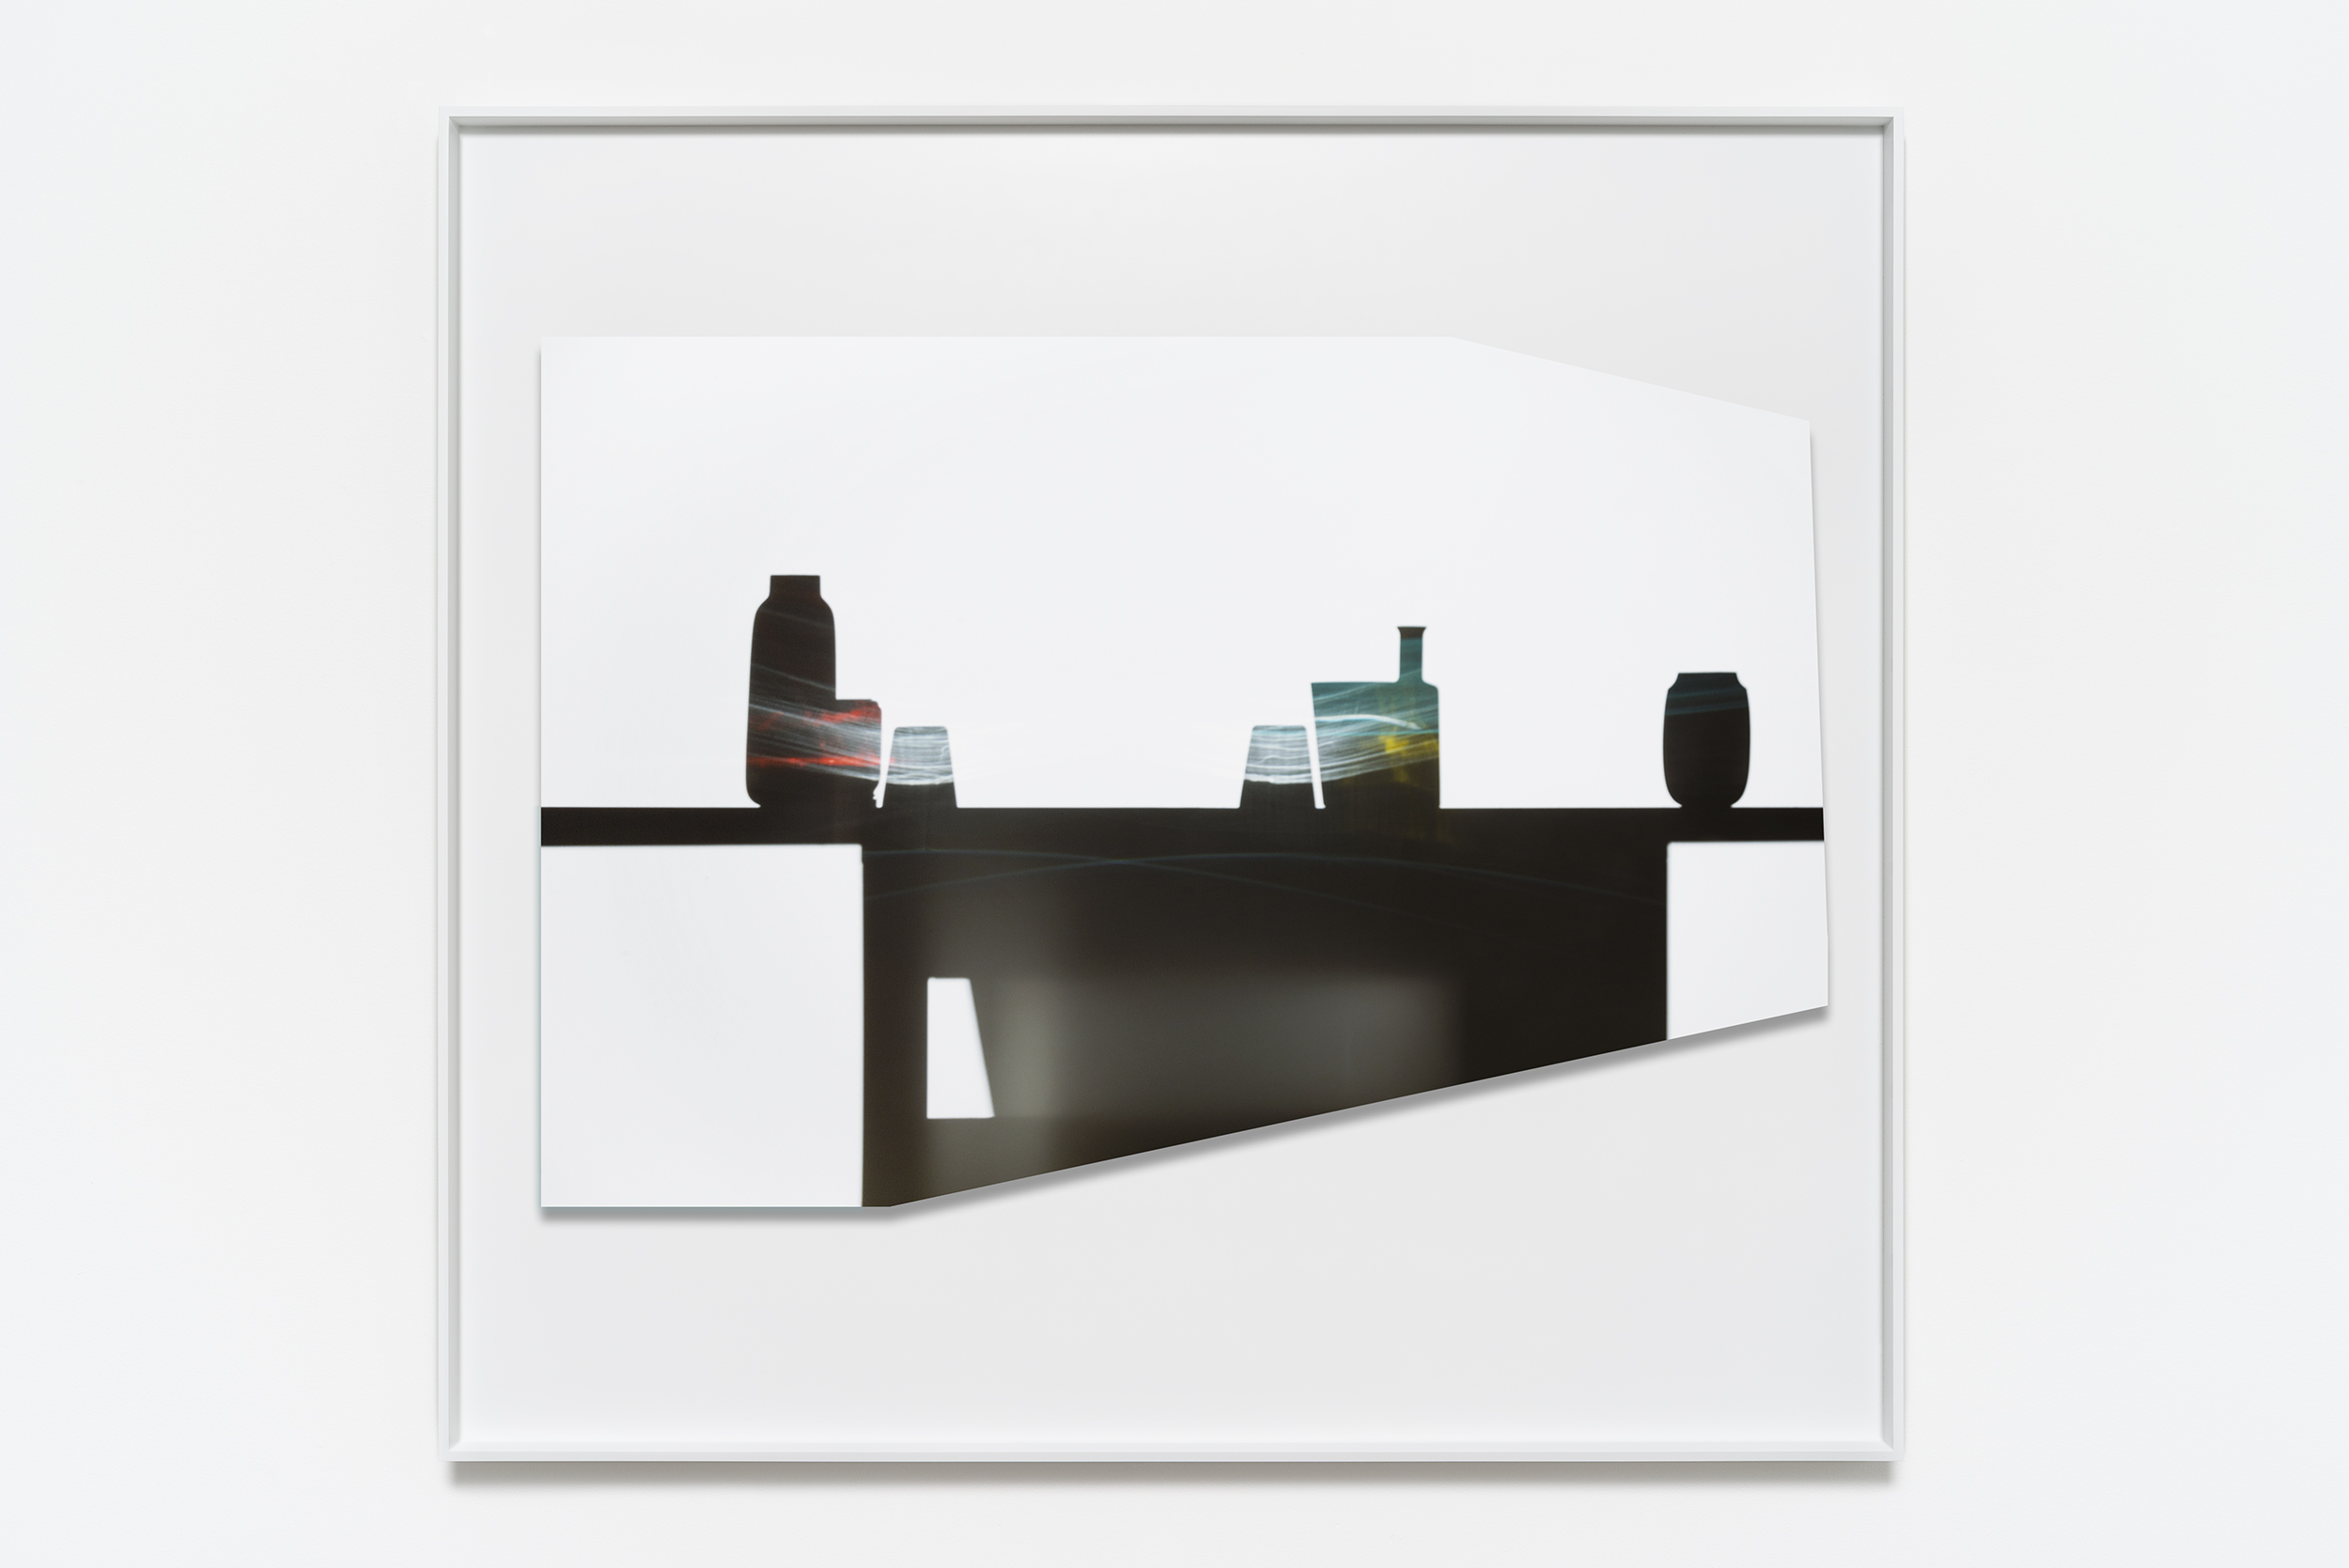 Uta Barth  In the Light and Shadow of Morandi (17.12) , 2017 Face mounted, raise, shaped, Archival Pigment print in artist frame 123.8 x 134 x 4.4 cm 48 3/4 x 52 3/4 x 1 3/4 in Photo: © Uta Barth Courtesy of 1301PE